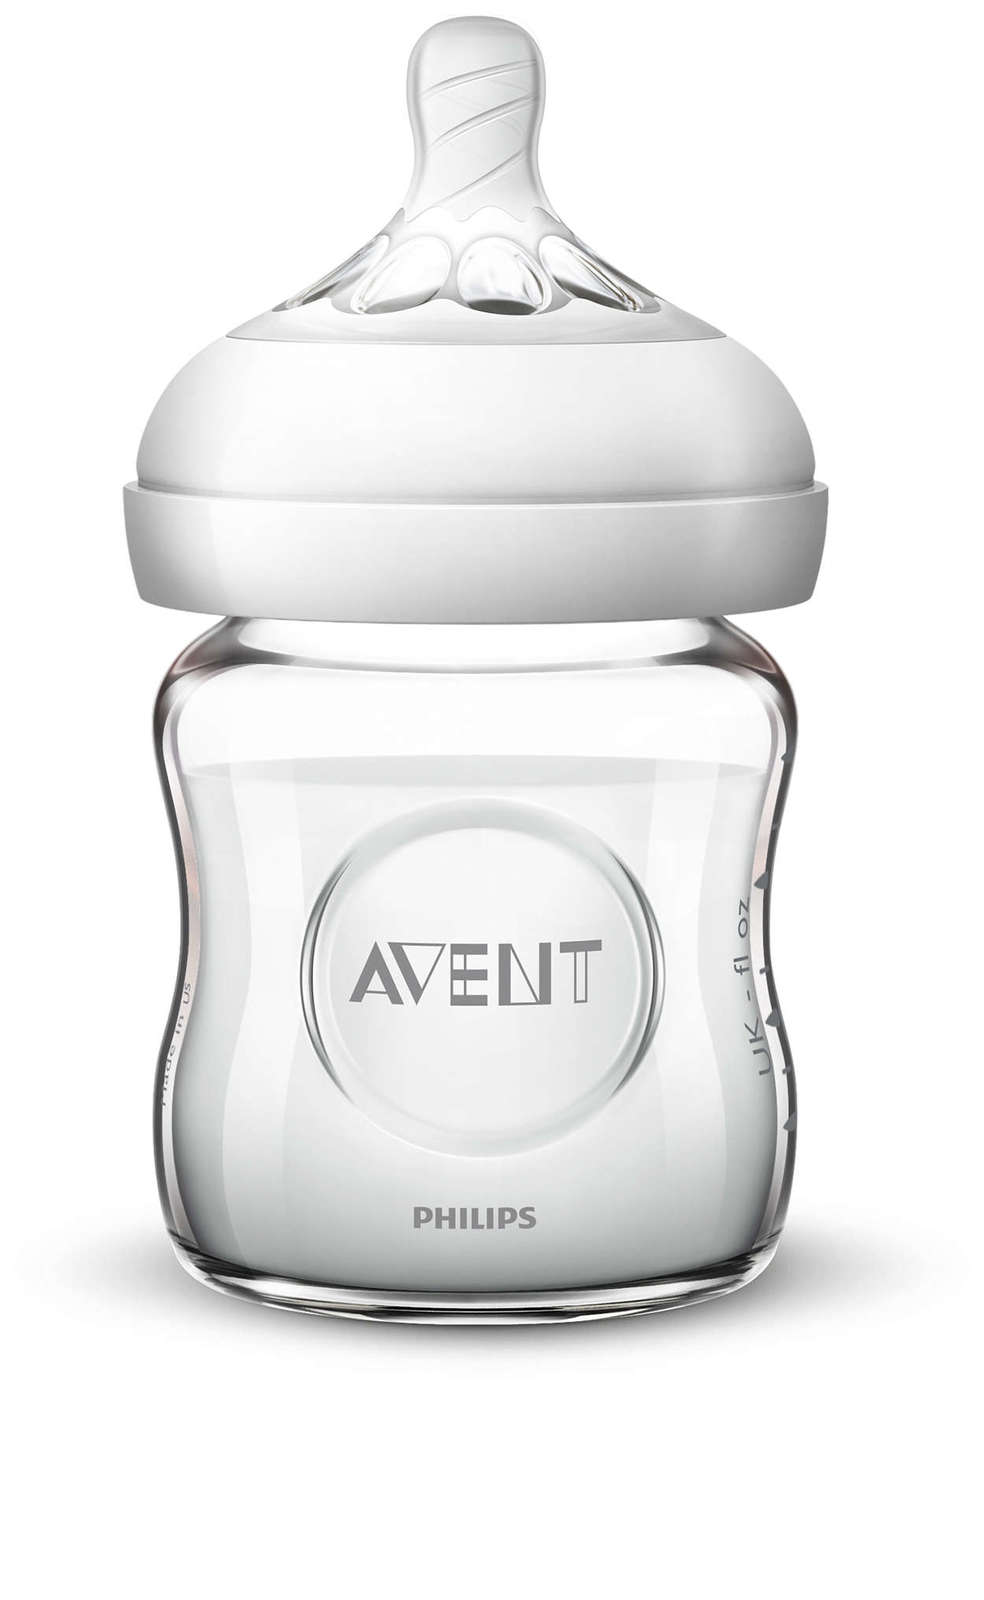 Philips Avent Natural Glass Bottle - 120ml image